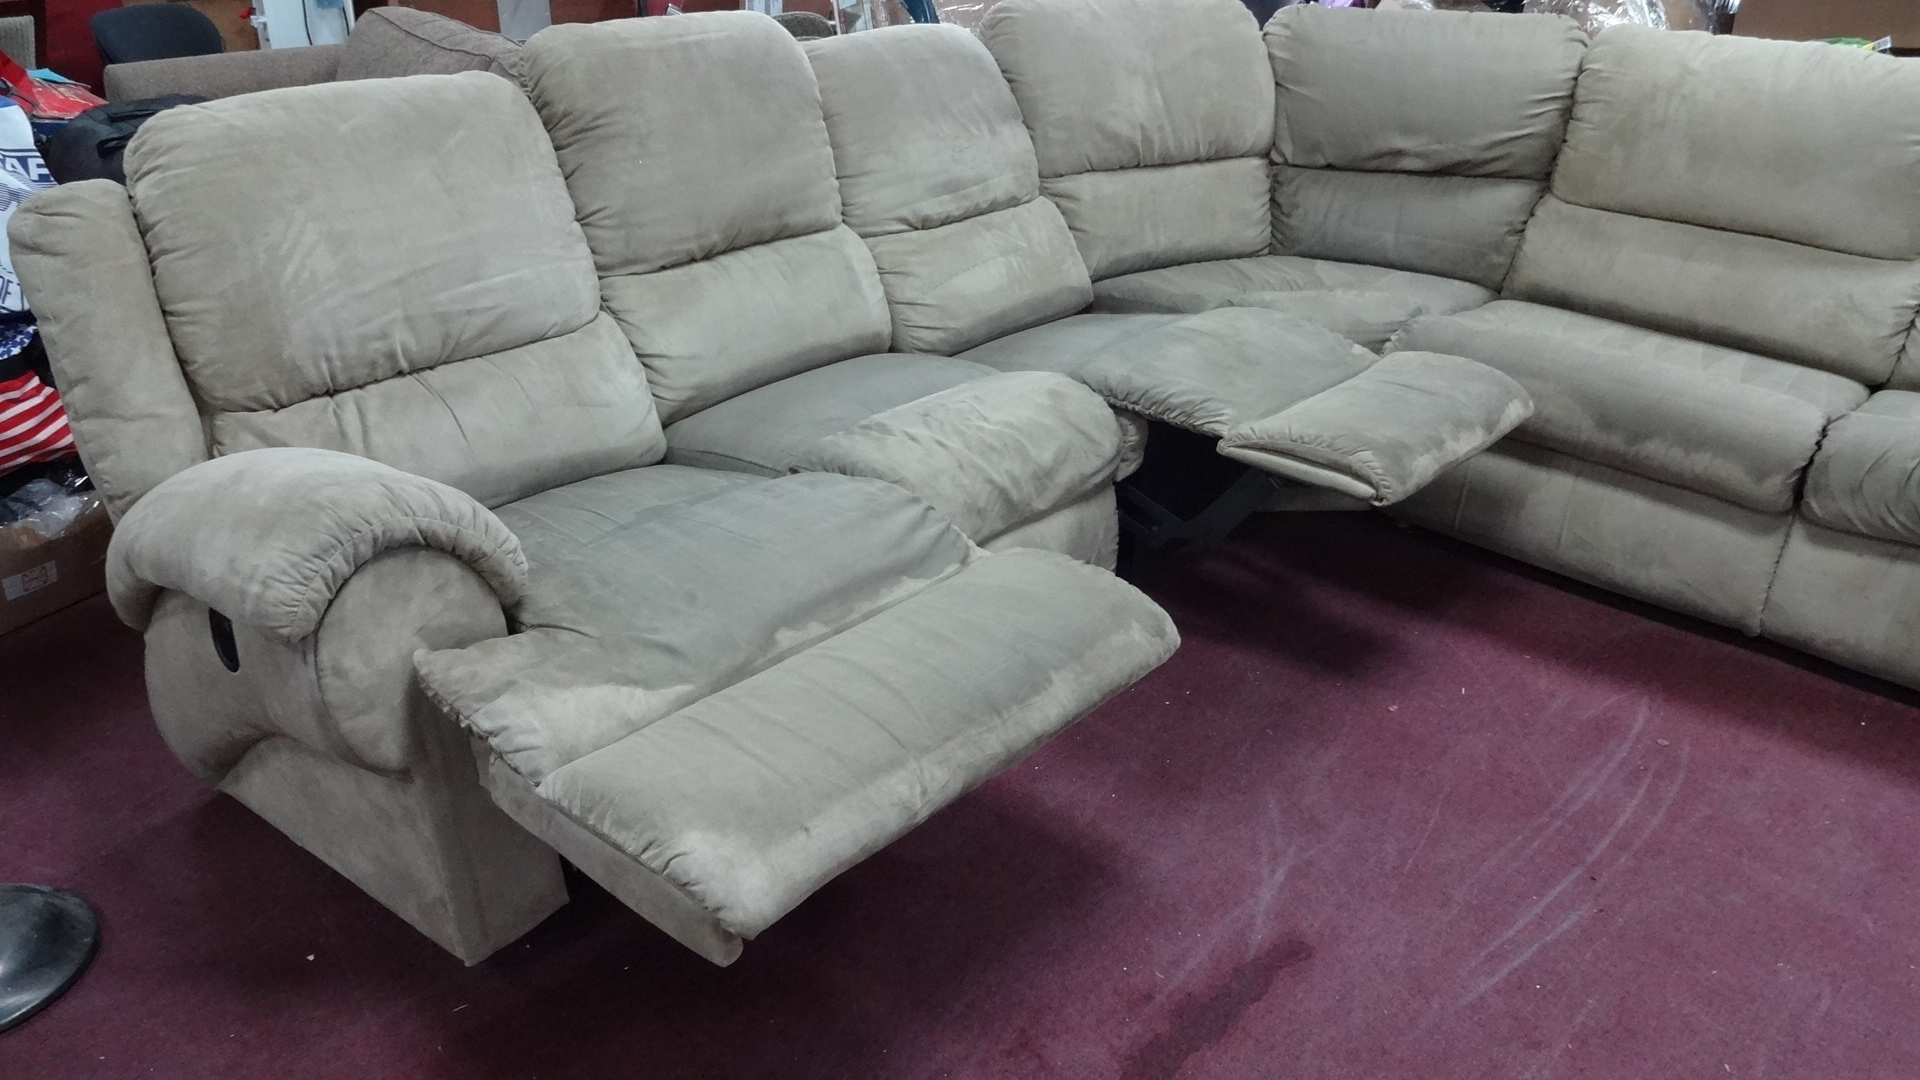 Lazy Boy Sofa Bed Sectional • Sofa Bed Pertaining To The Brick Sectional Sofas (View 7 of 10)